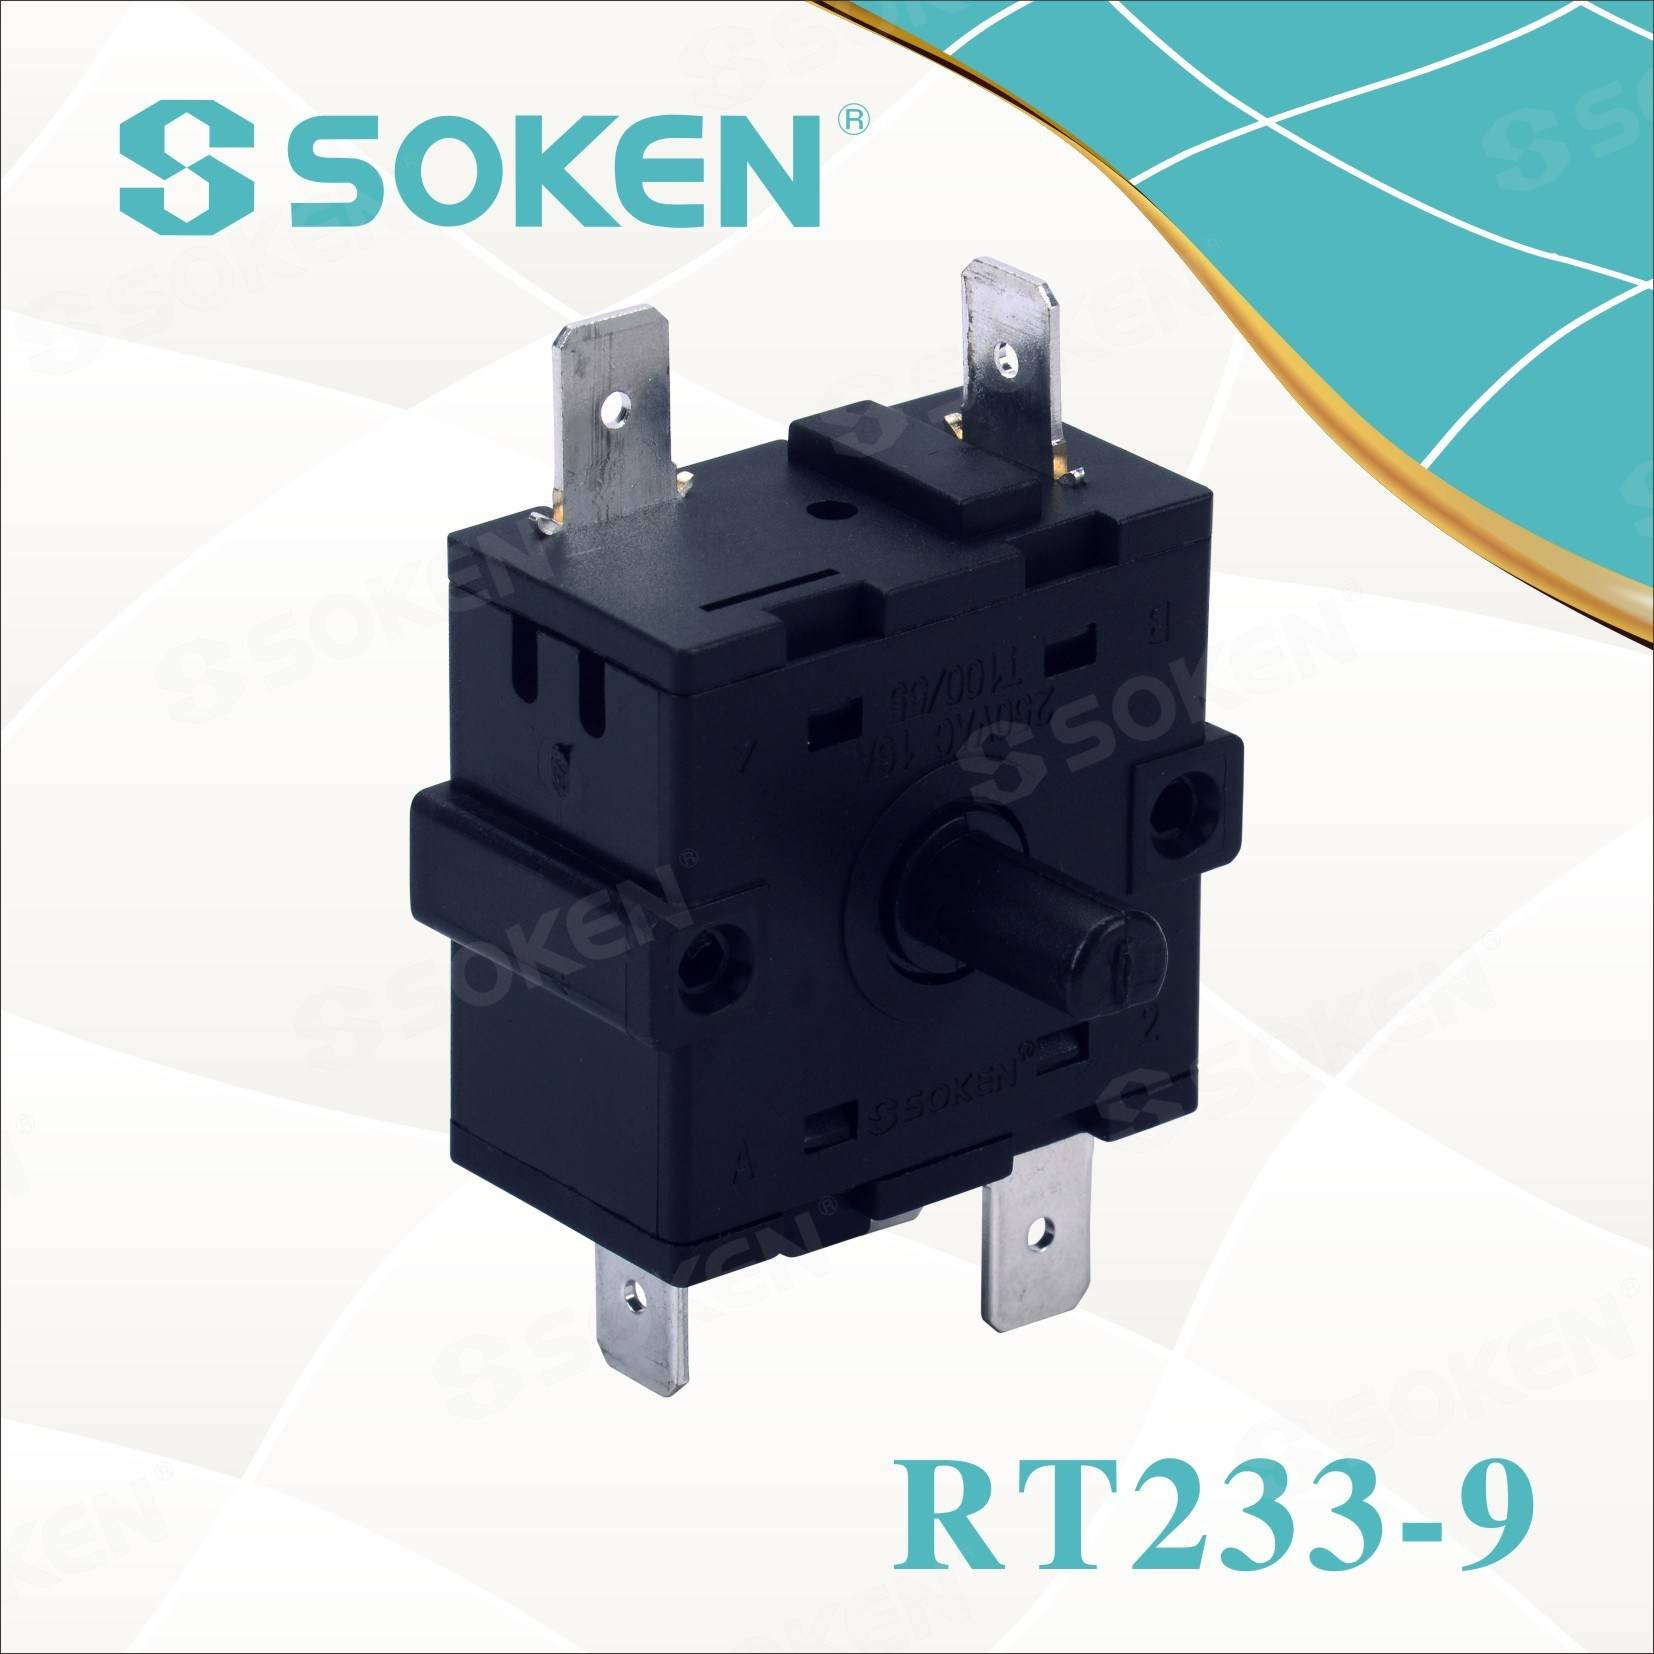 Soken Mahlapressid Extractor Rotary Switch